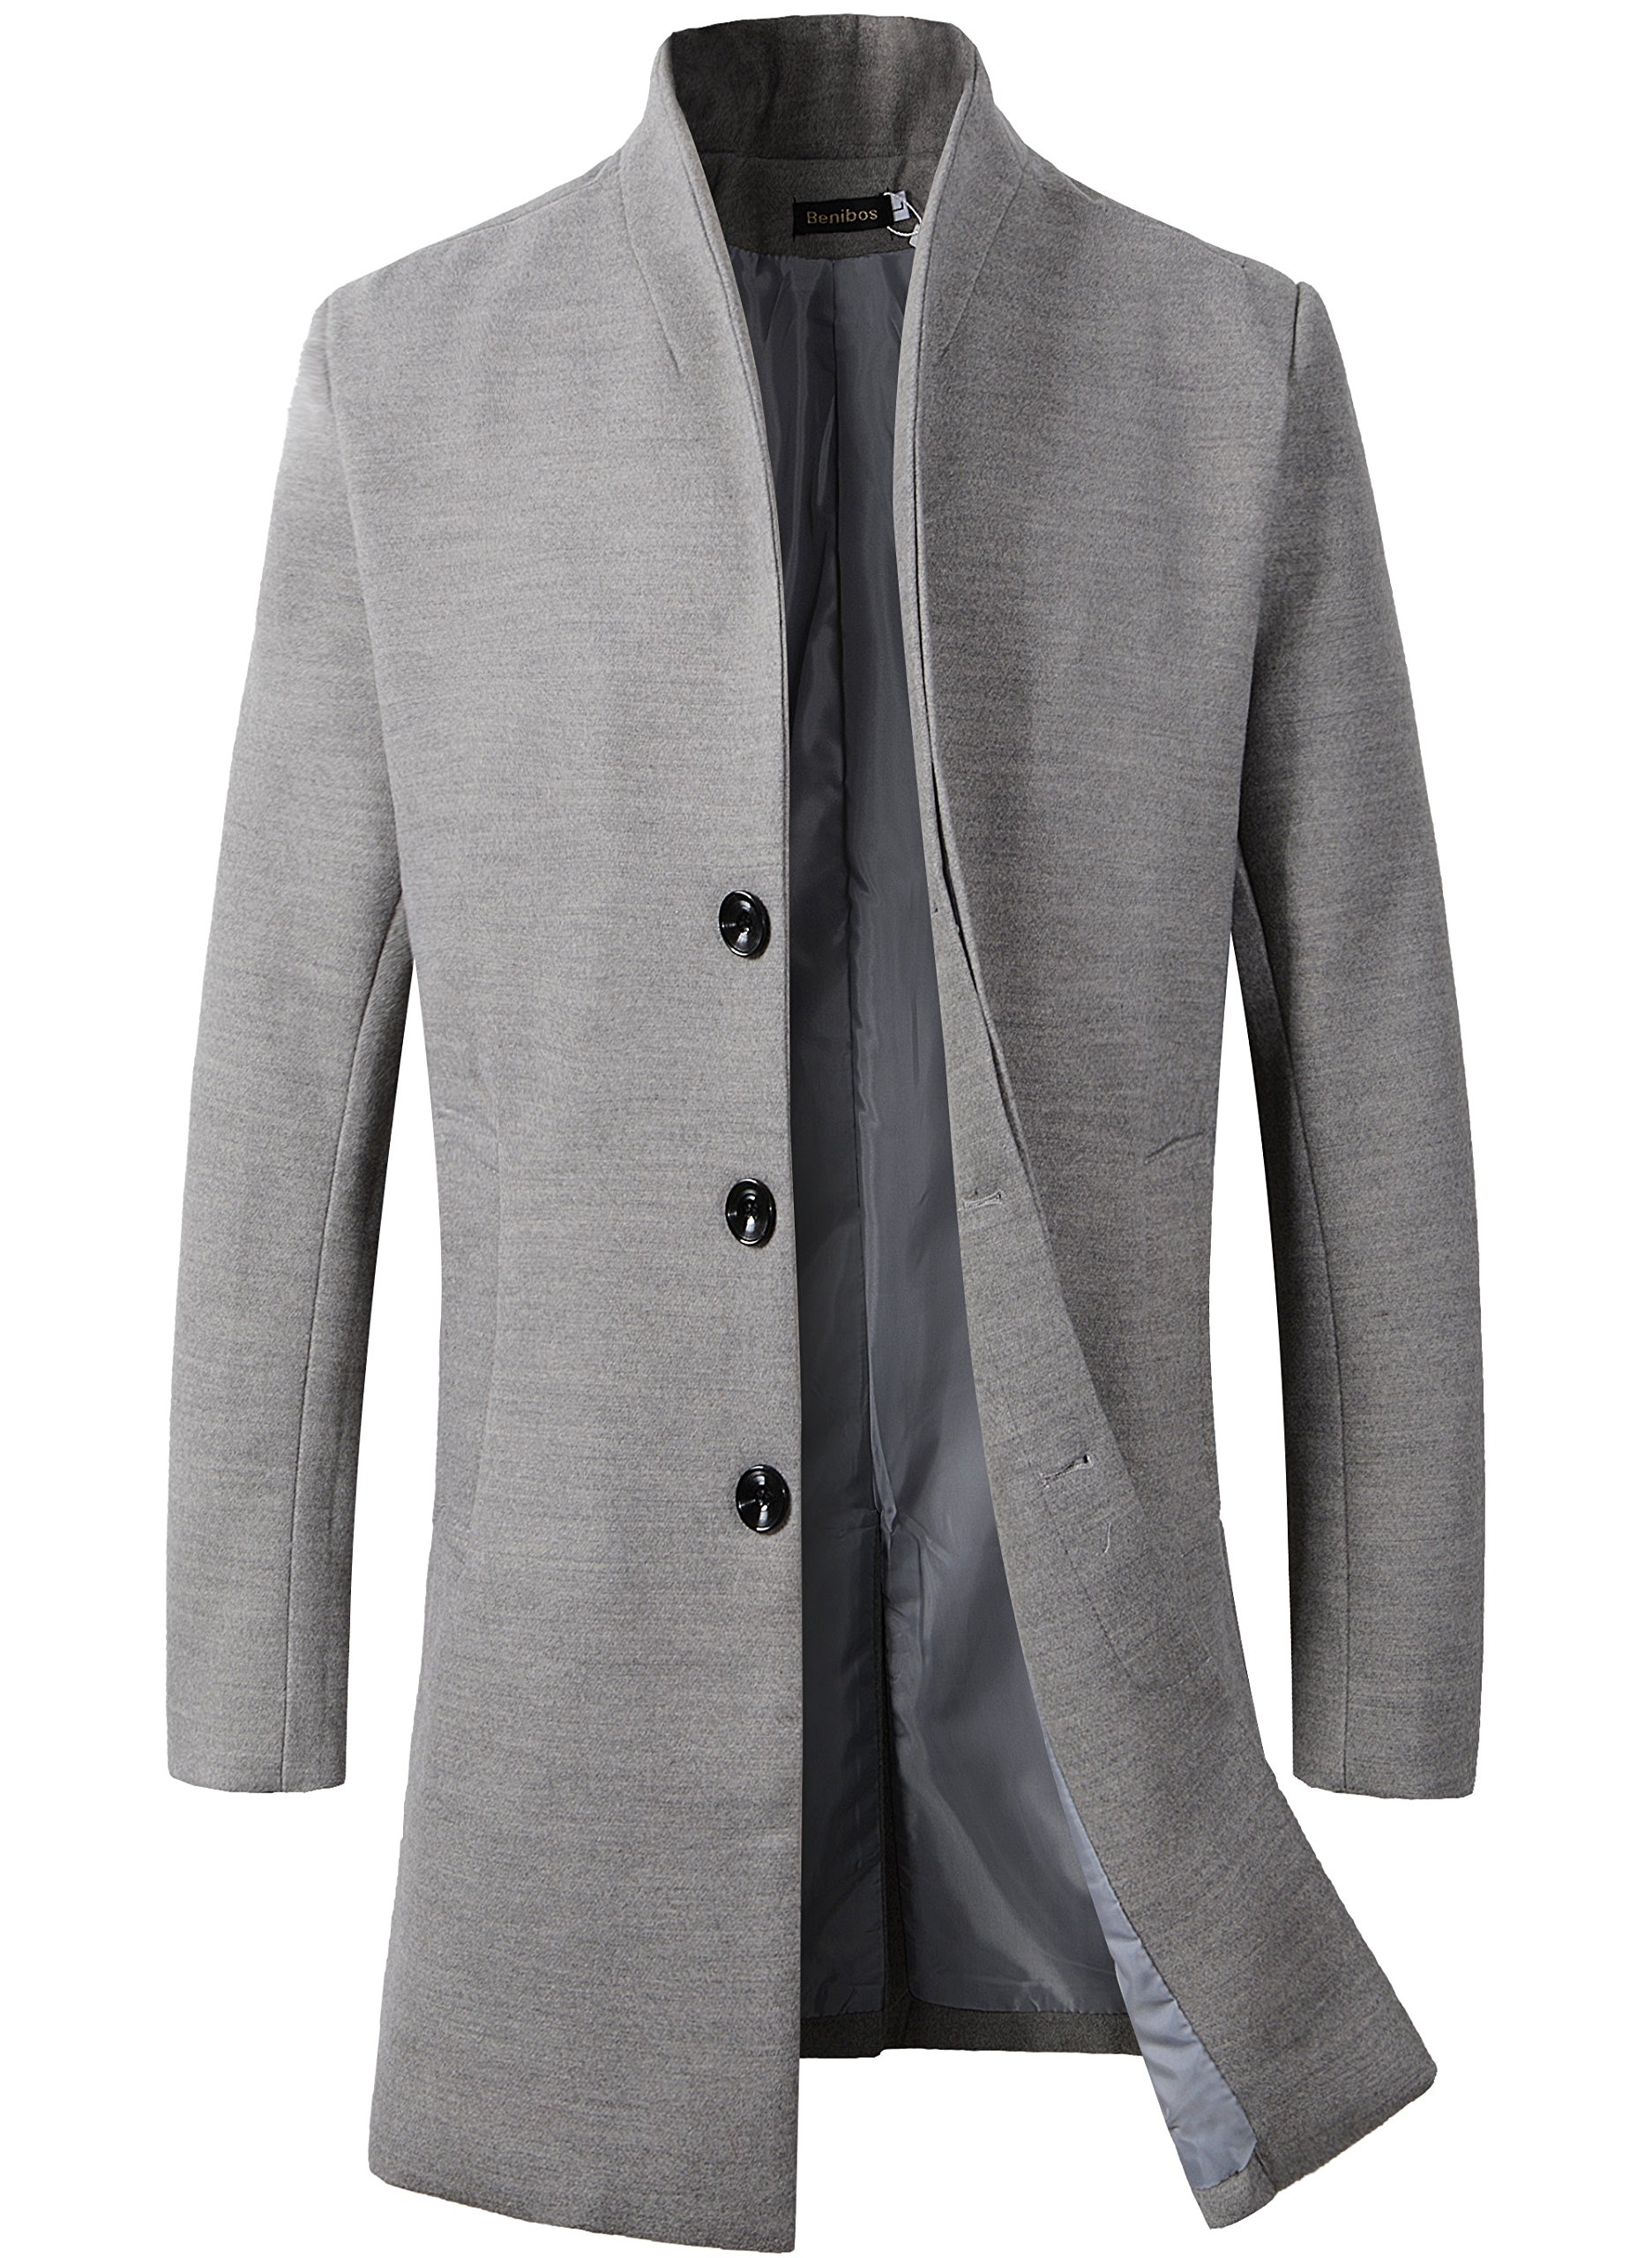 Beninos Men's Trench Coat Winter Long Jacket Button Closer Overcoat (168 Grey, S) by Beninos